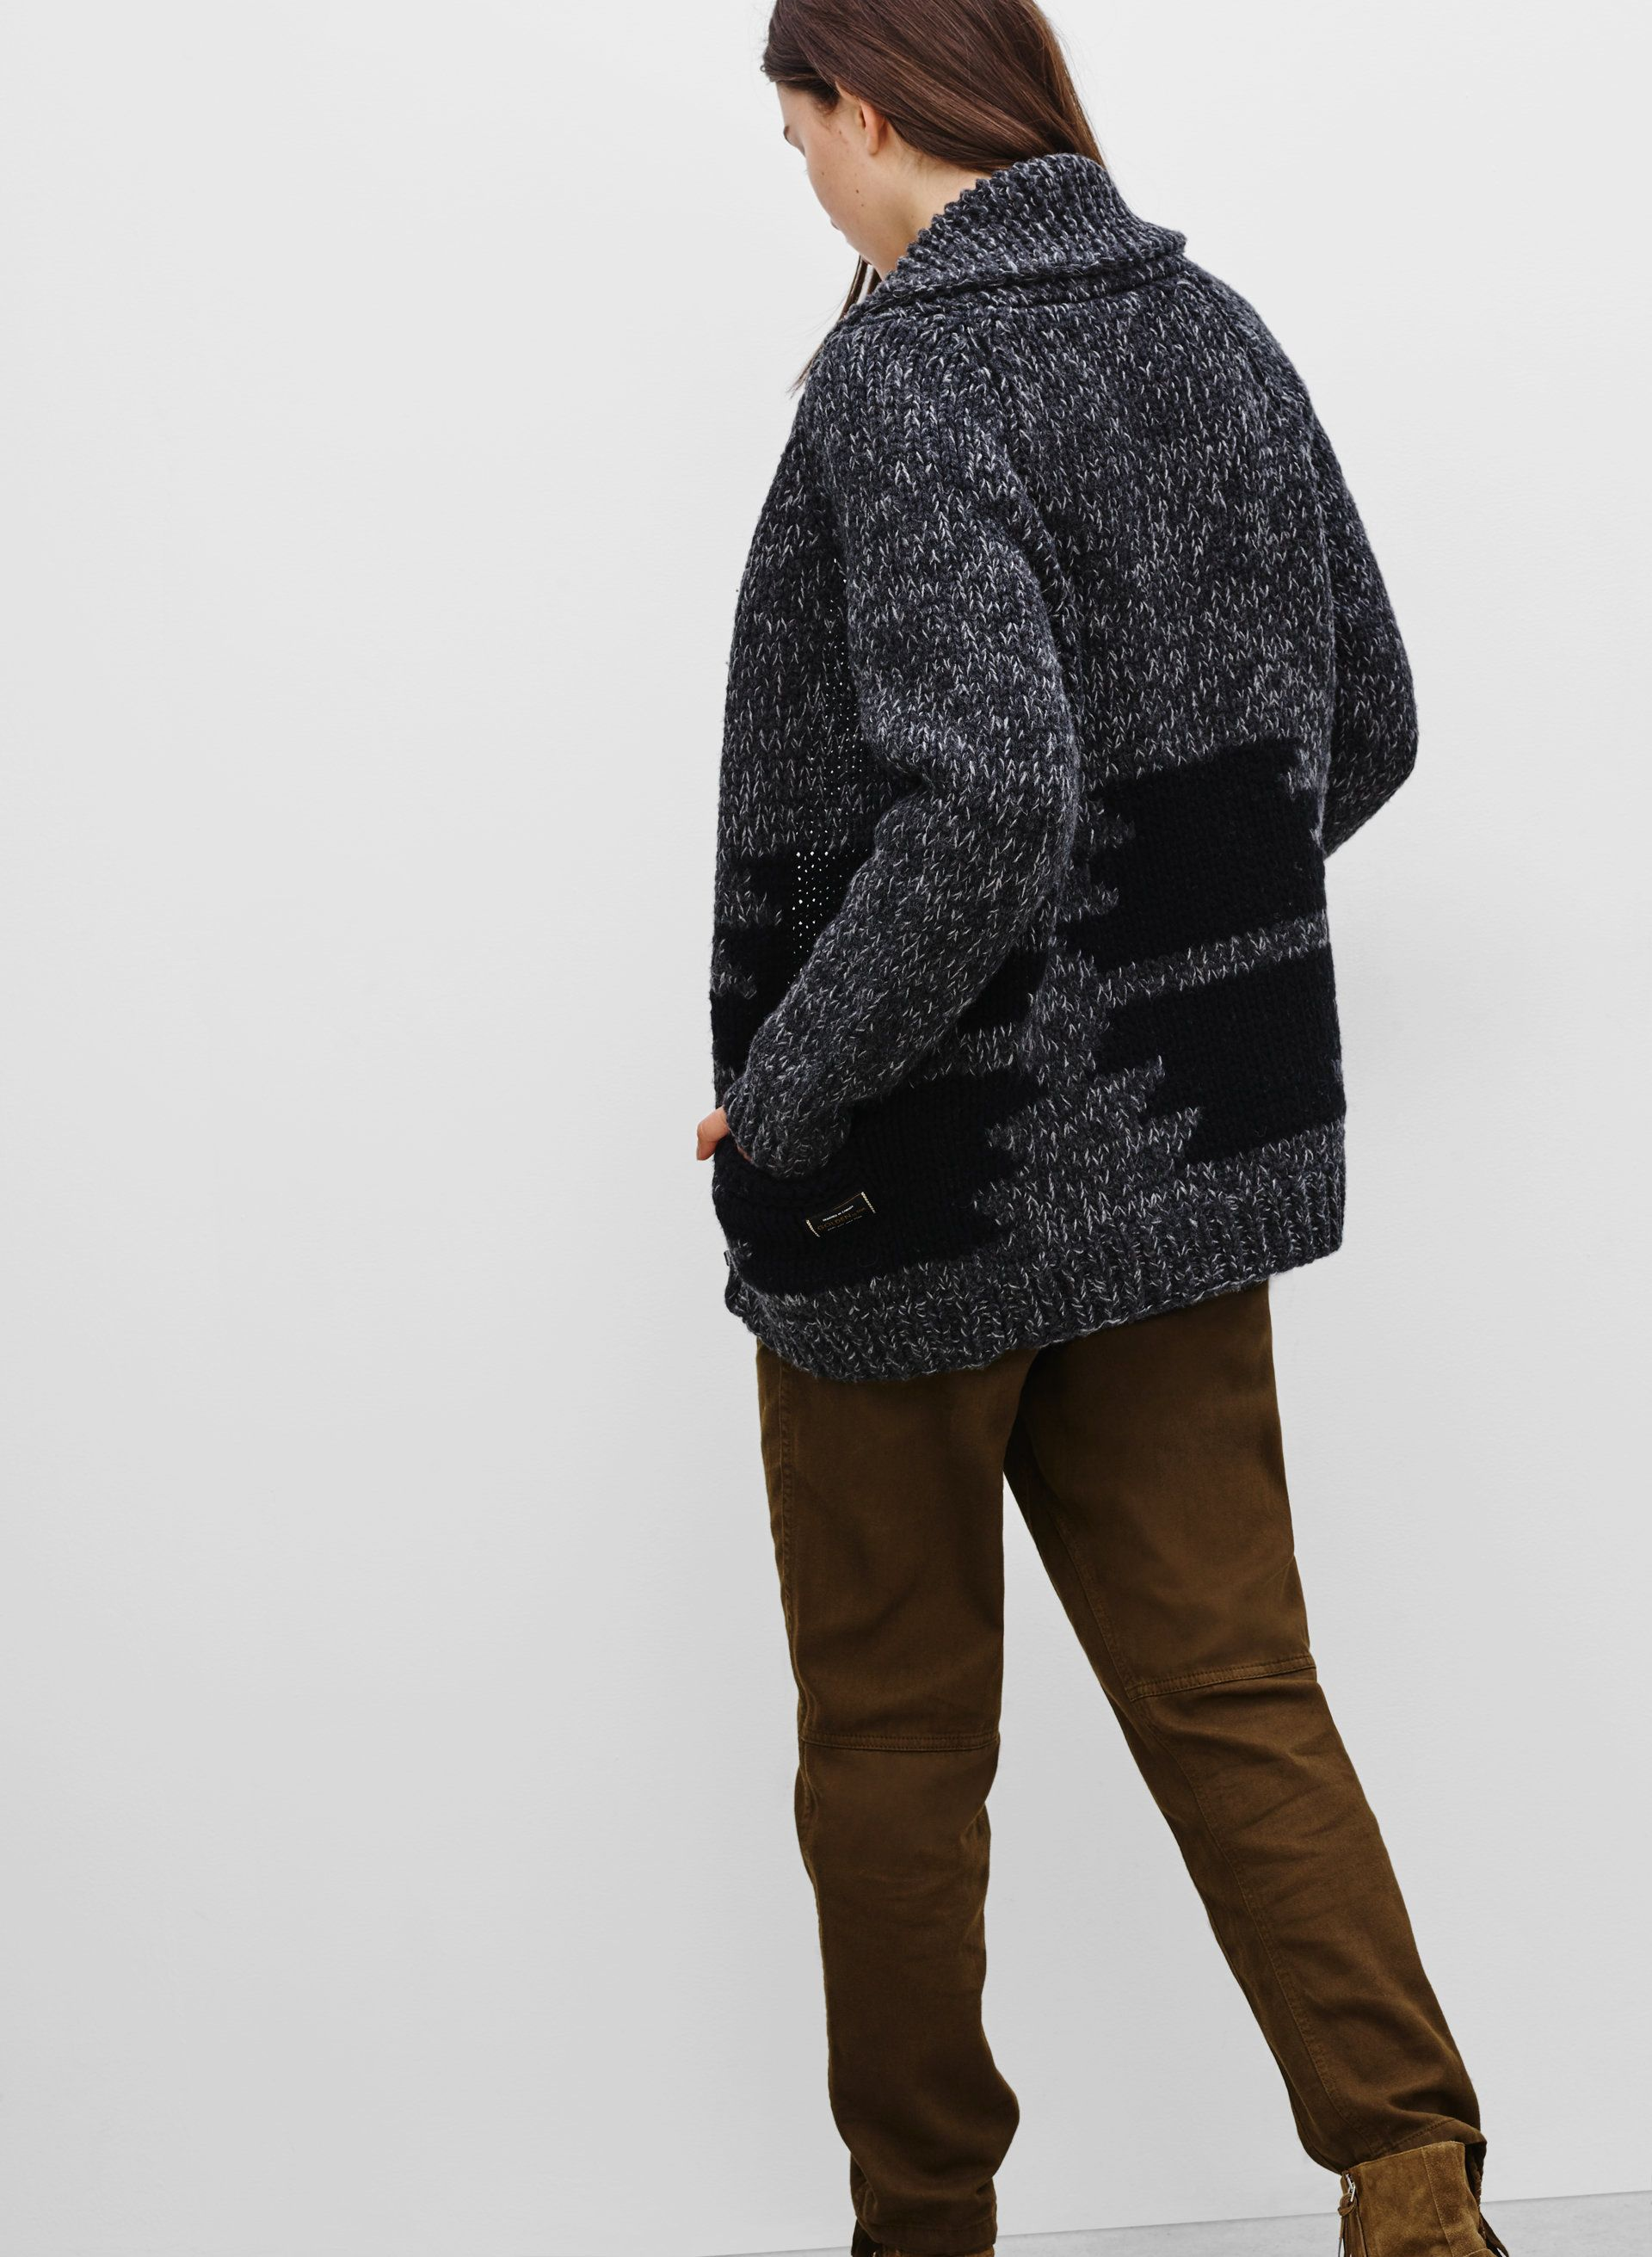 GOLDEN by TNA STIRLING SWEATER   Aritzia